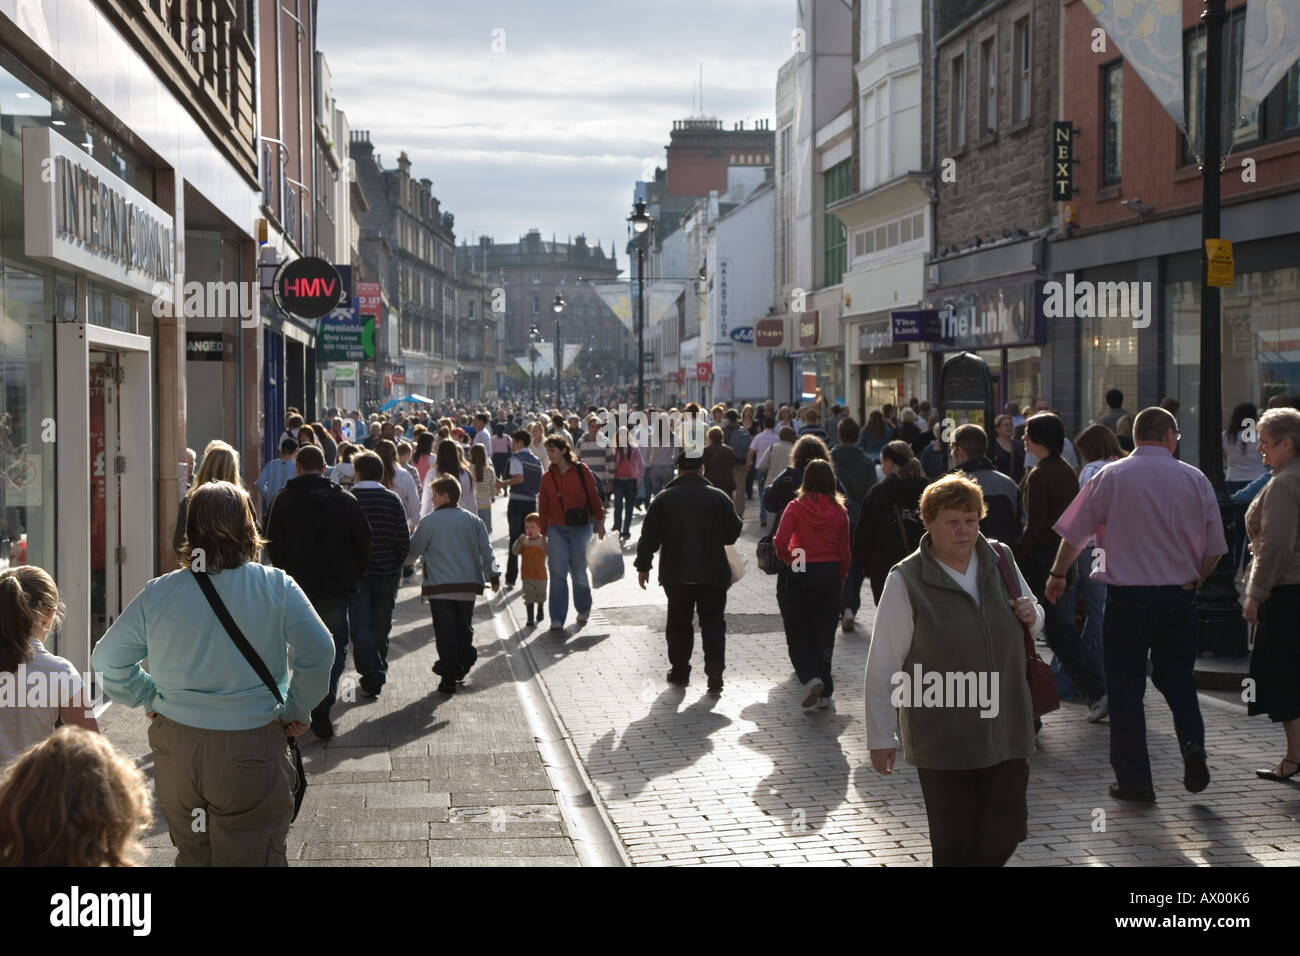 Urban Christmas Shoppers silhouetted in the busy Streets of Dundee, city centre, Tayside, Scotland, UK. People silhouettes against the low winter sun. - Stock Image